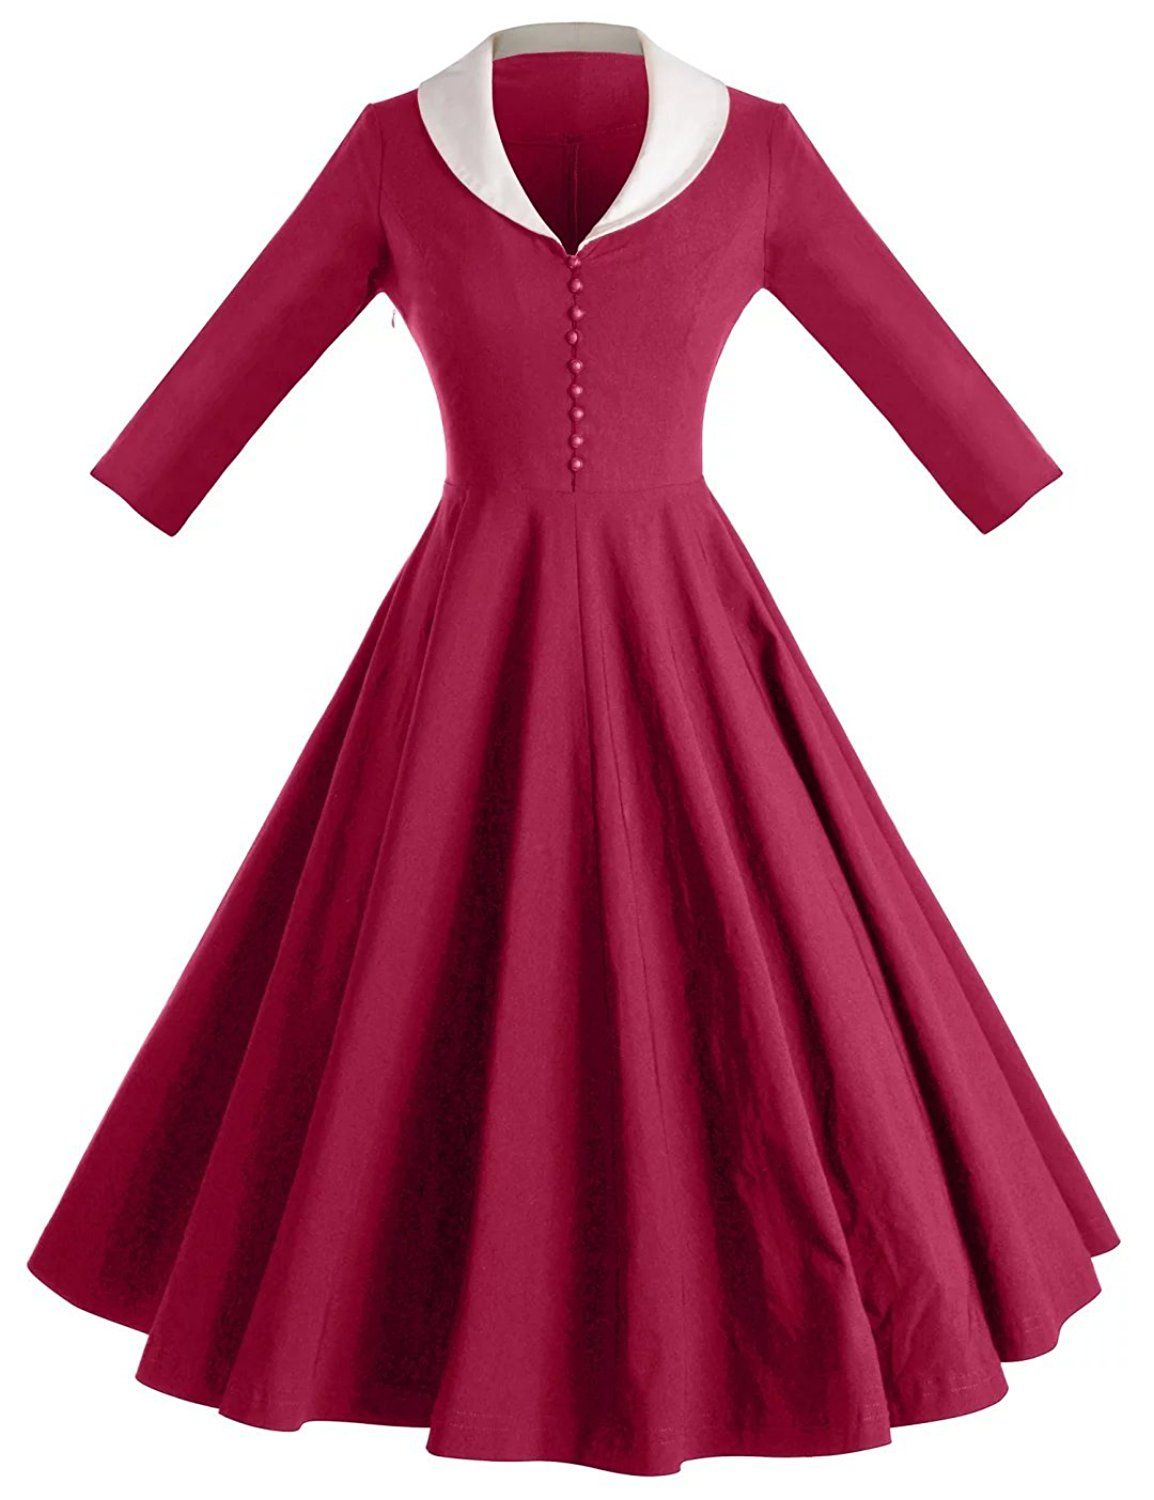 GownTown Womens Dresses cape collar 3/4 Sleeves 1950s Vintage Dresses Swing Stretchy Dresses at Amazon Women's Clothing store: https://www.amazon.com/gp/product/B01M5EPXD3/ref=as_li_qf_sp_asin_il_tl?ie=UTF8&tag=rockaclothsto-20&camp=1789&creative=9325&linkCode=as2&creativeASIN=B01M5EPXD3&linkId=7c9e45fbf6855591f9628bdef1862873